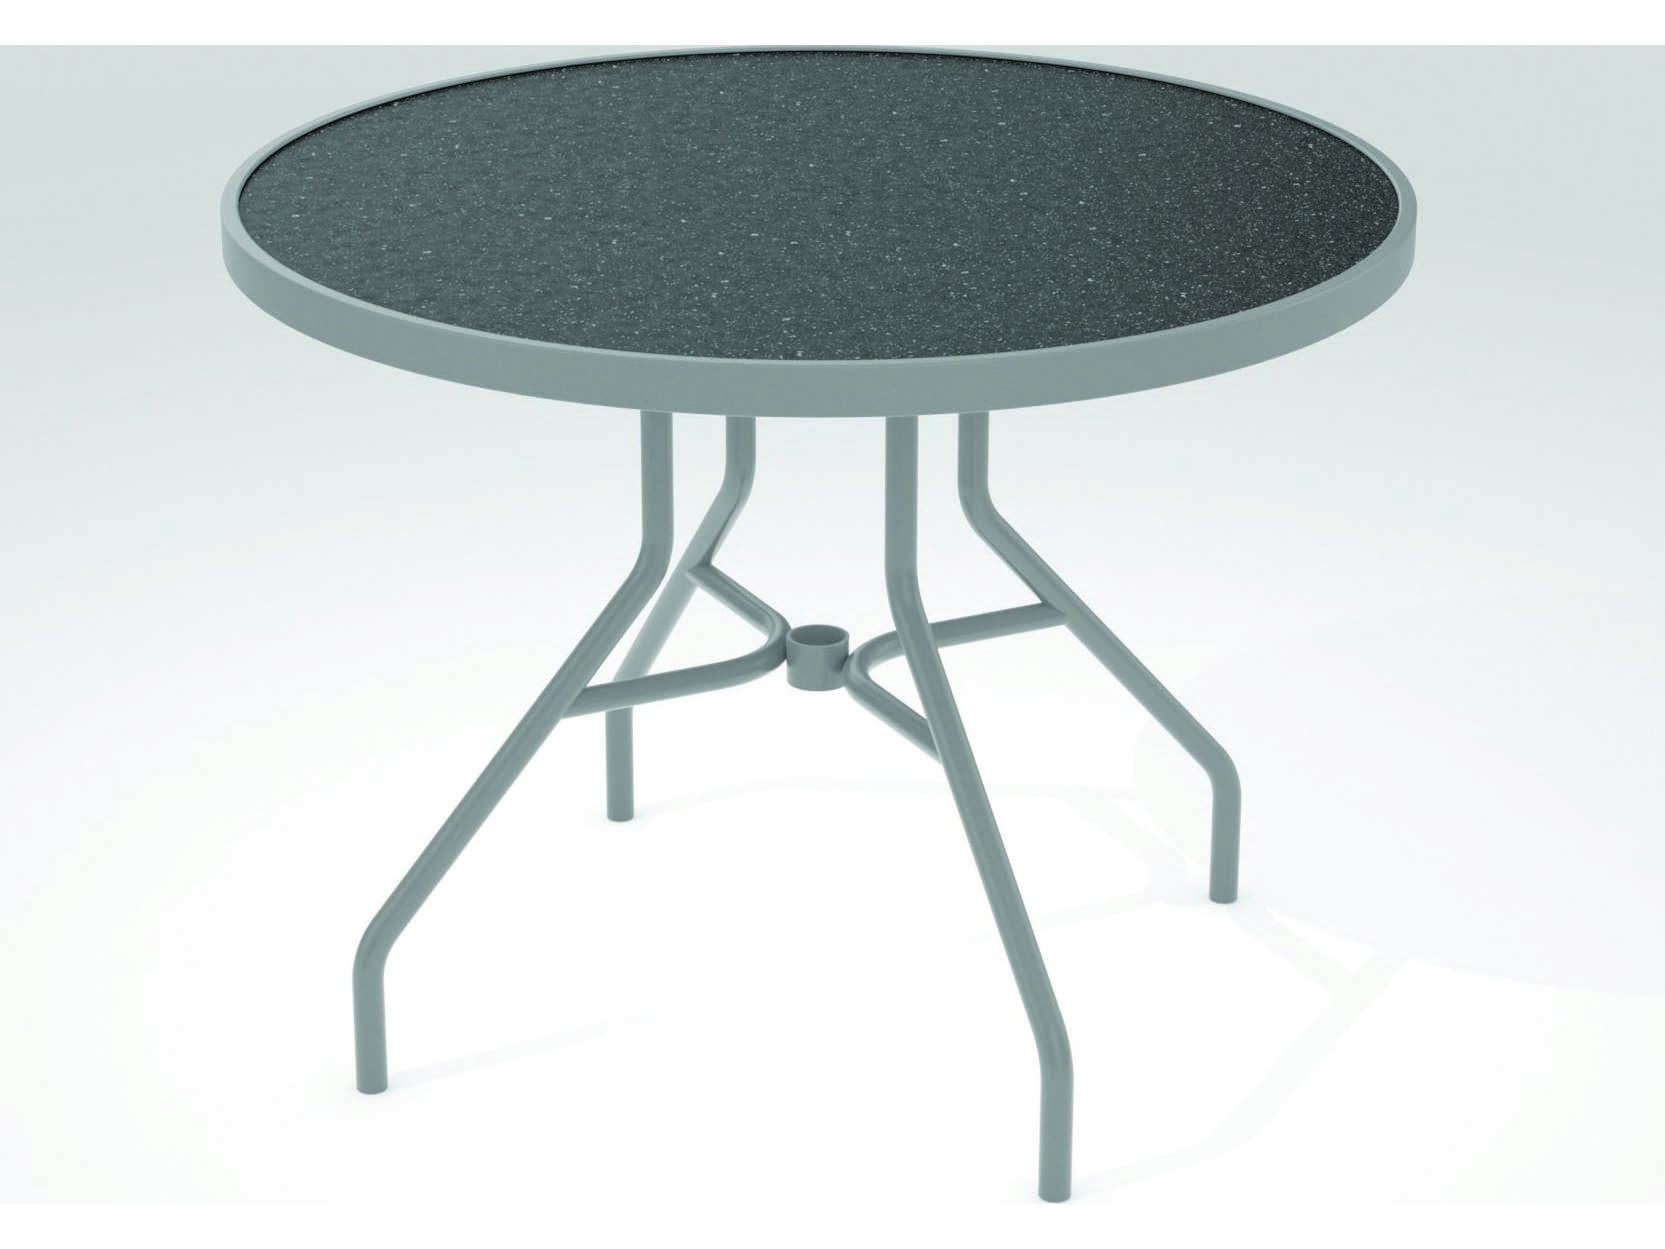 Tropitone hpl raduno aluminum 36 round dining table 670h for 36 round dining table